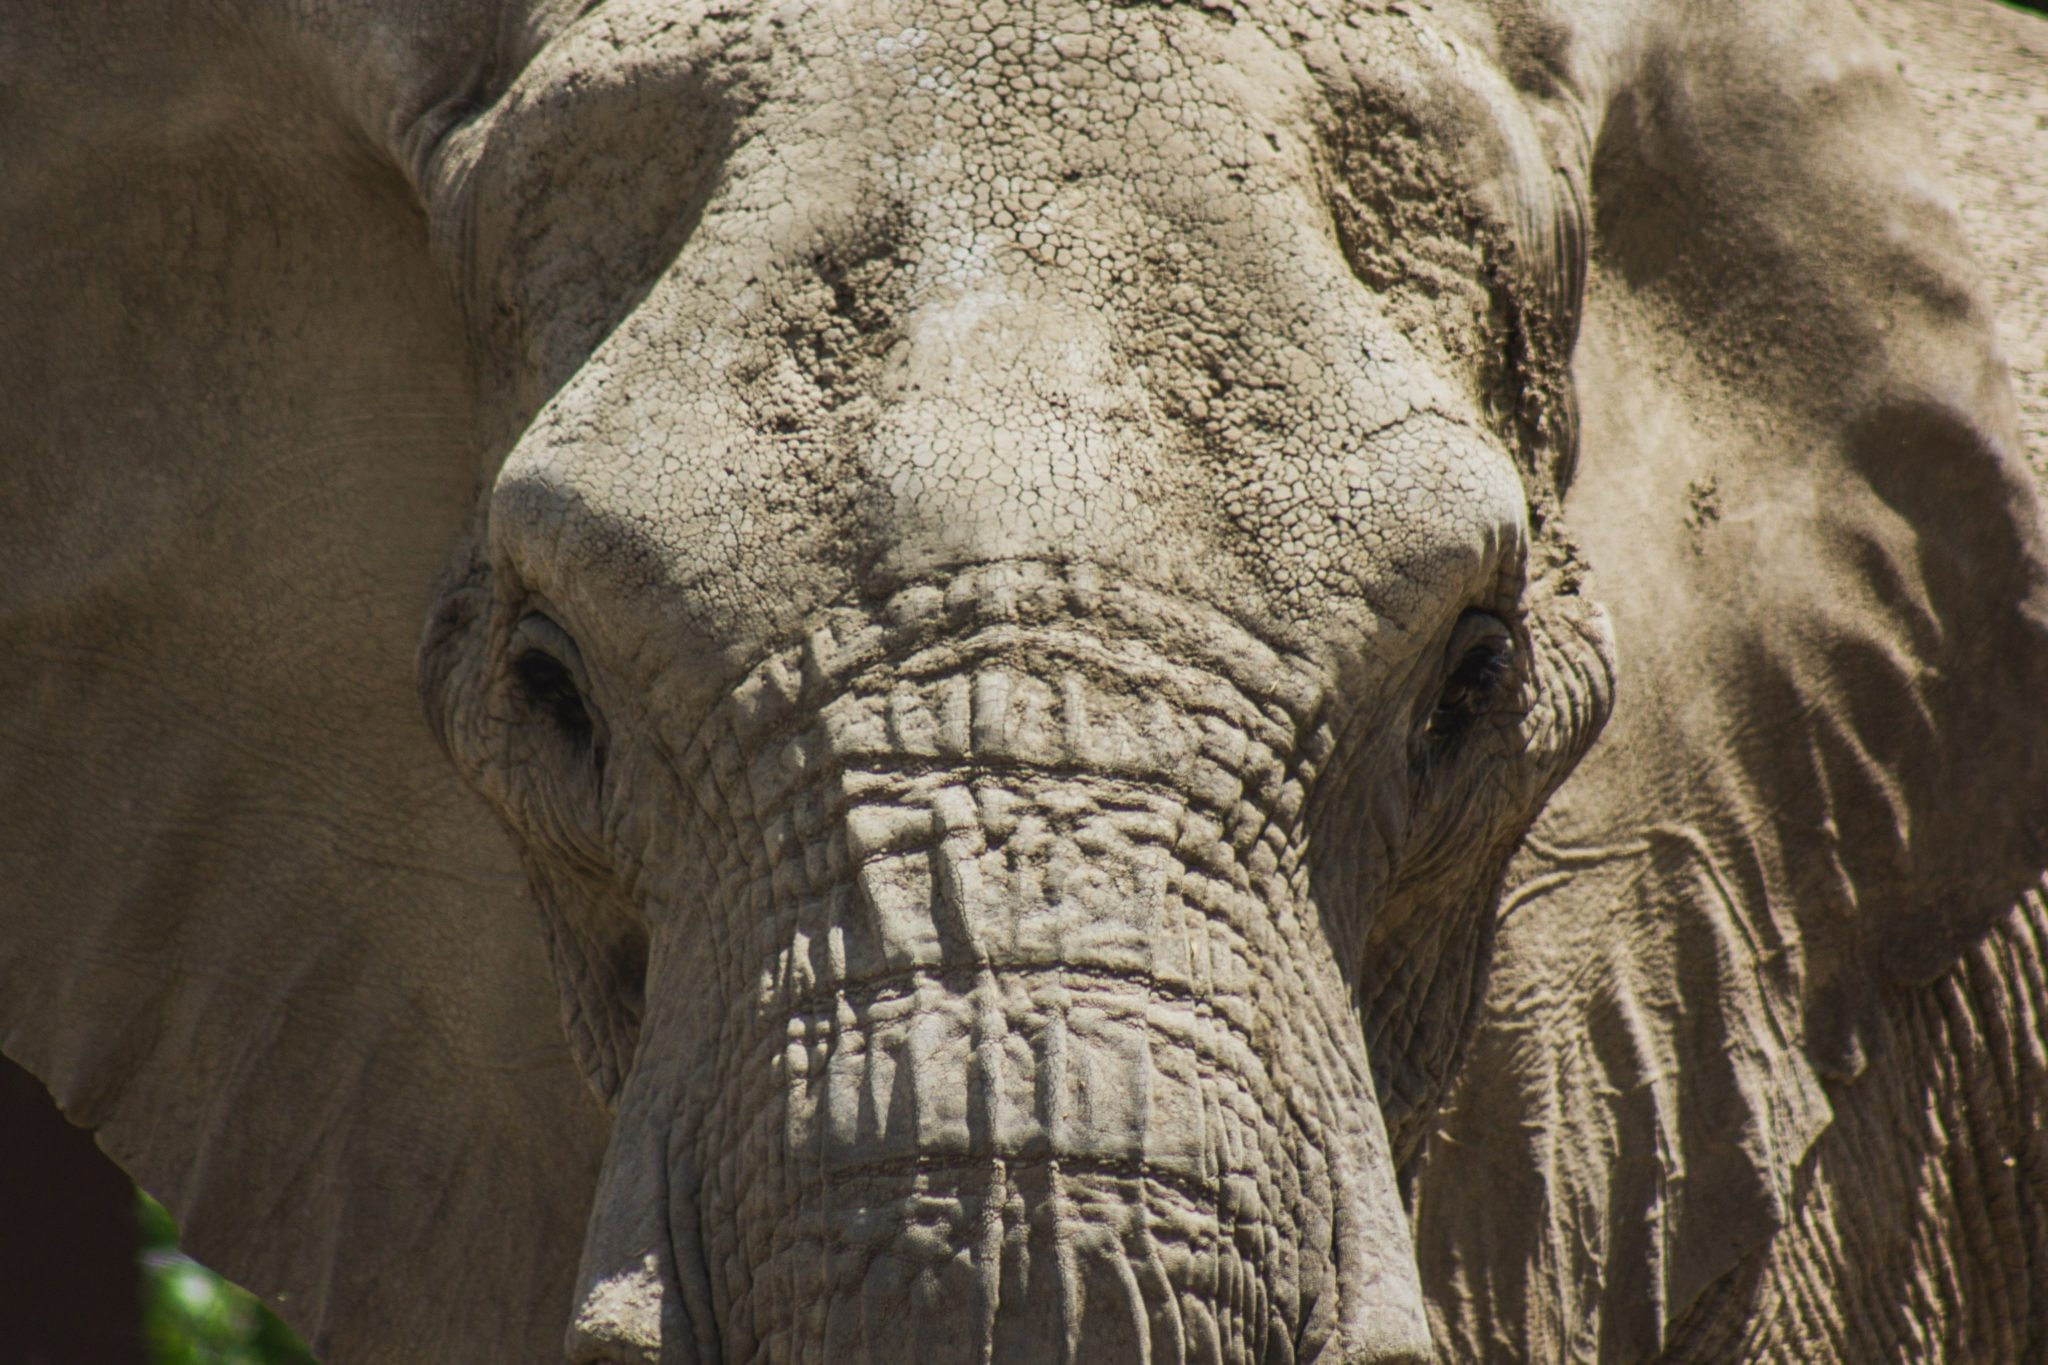 Elephant never Forgets – Evernote: The Writer's Journal